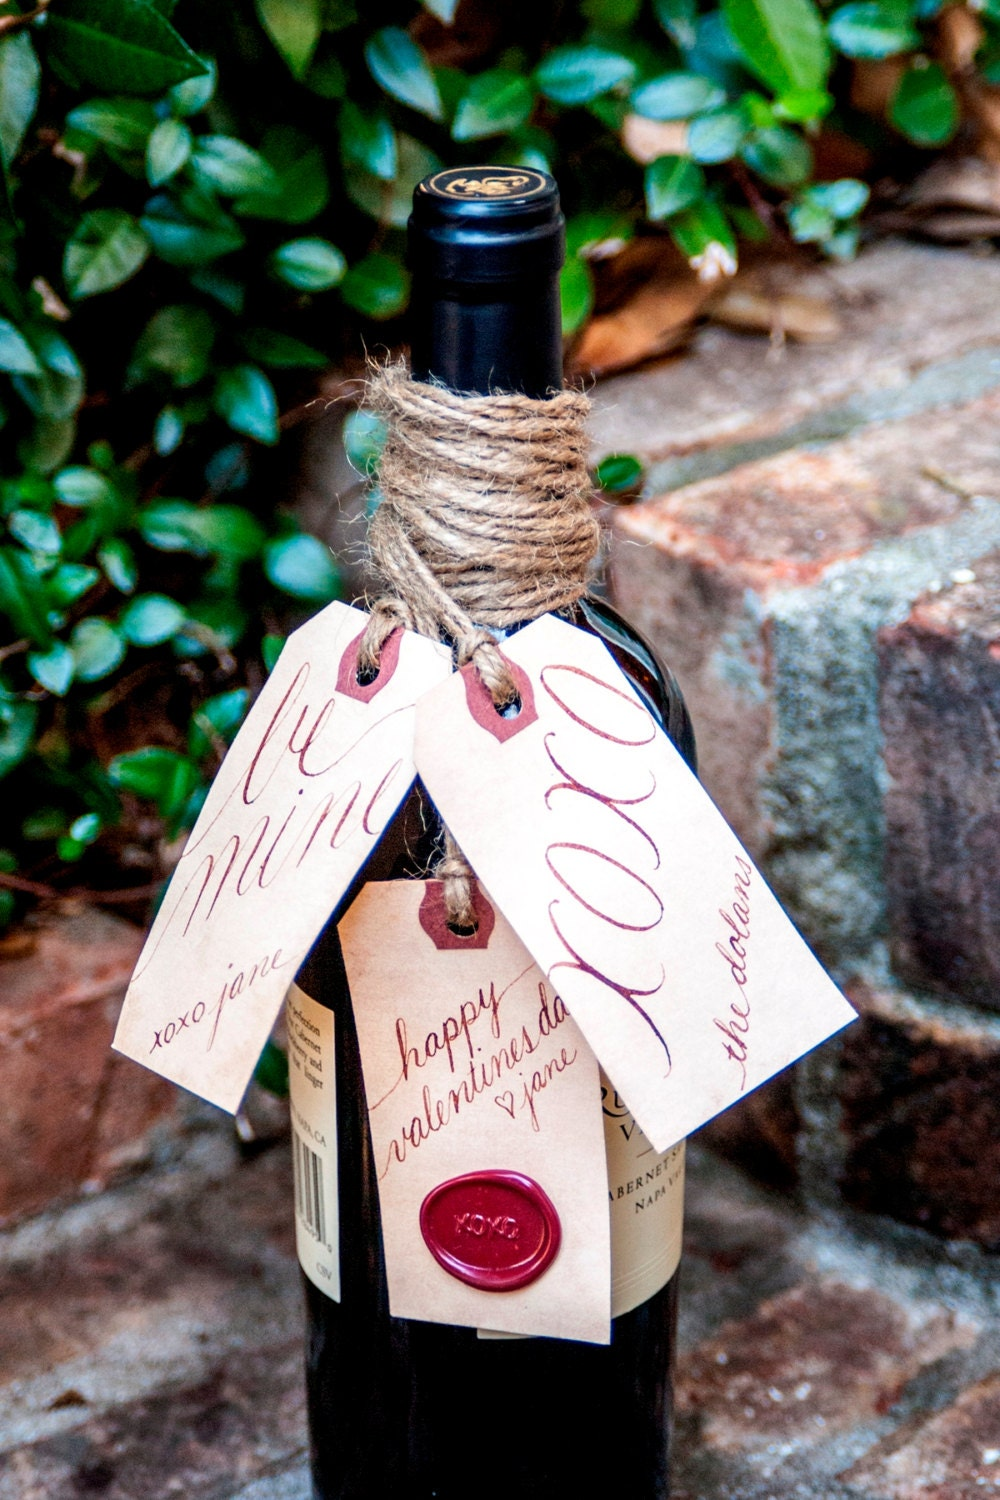 Valentine's Day Wine and Gift Tags (3) - Personalized Hand Calligraphy   Custom Gift Labels - X0X0 Wax Seal /Stained /Vintage Inspired